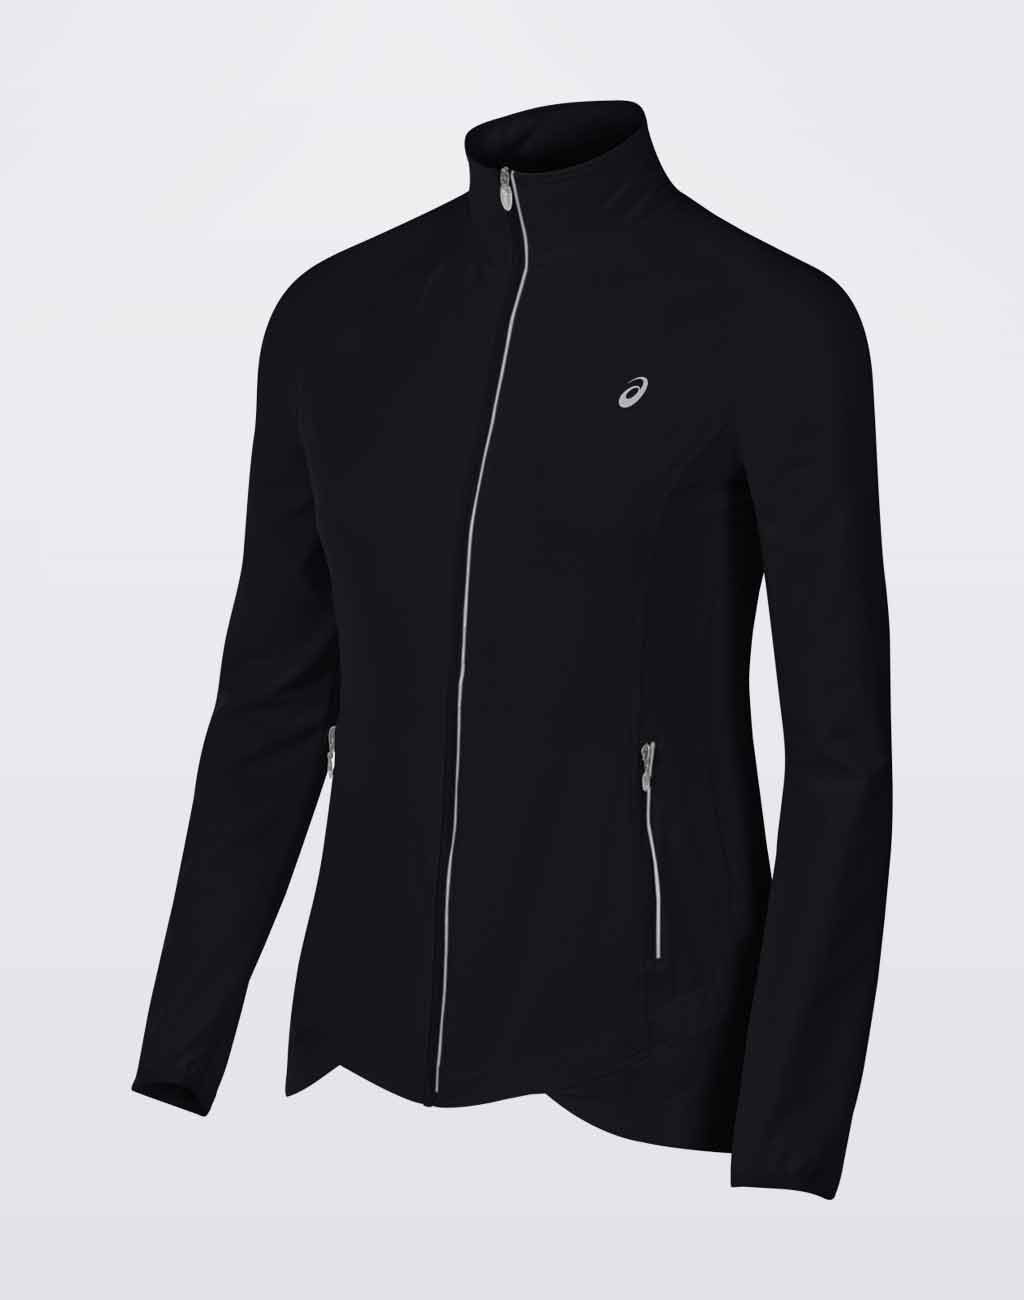 Packable Jacket (Women's)